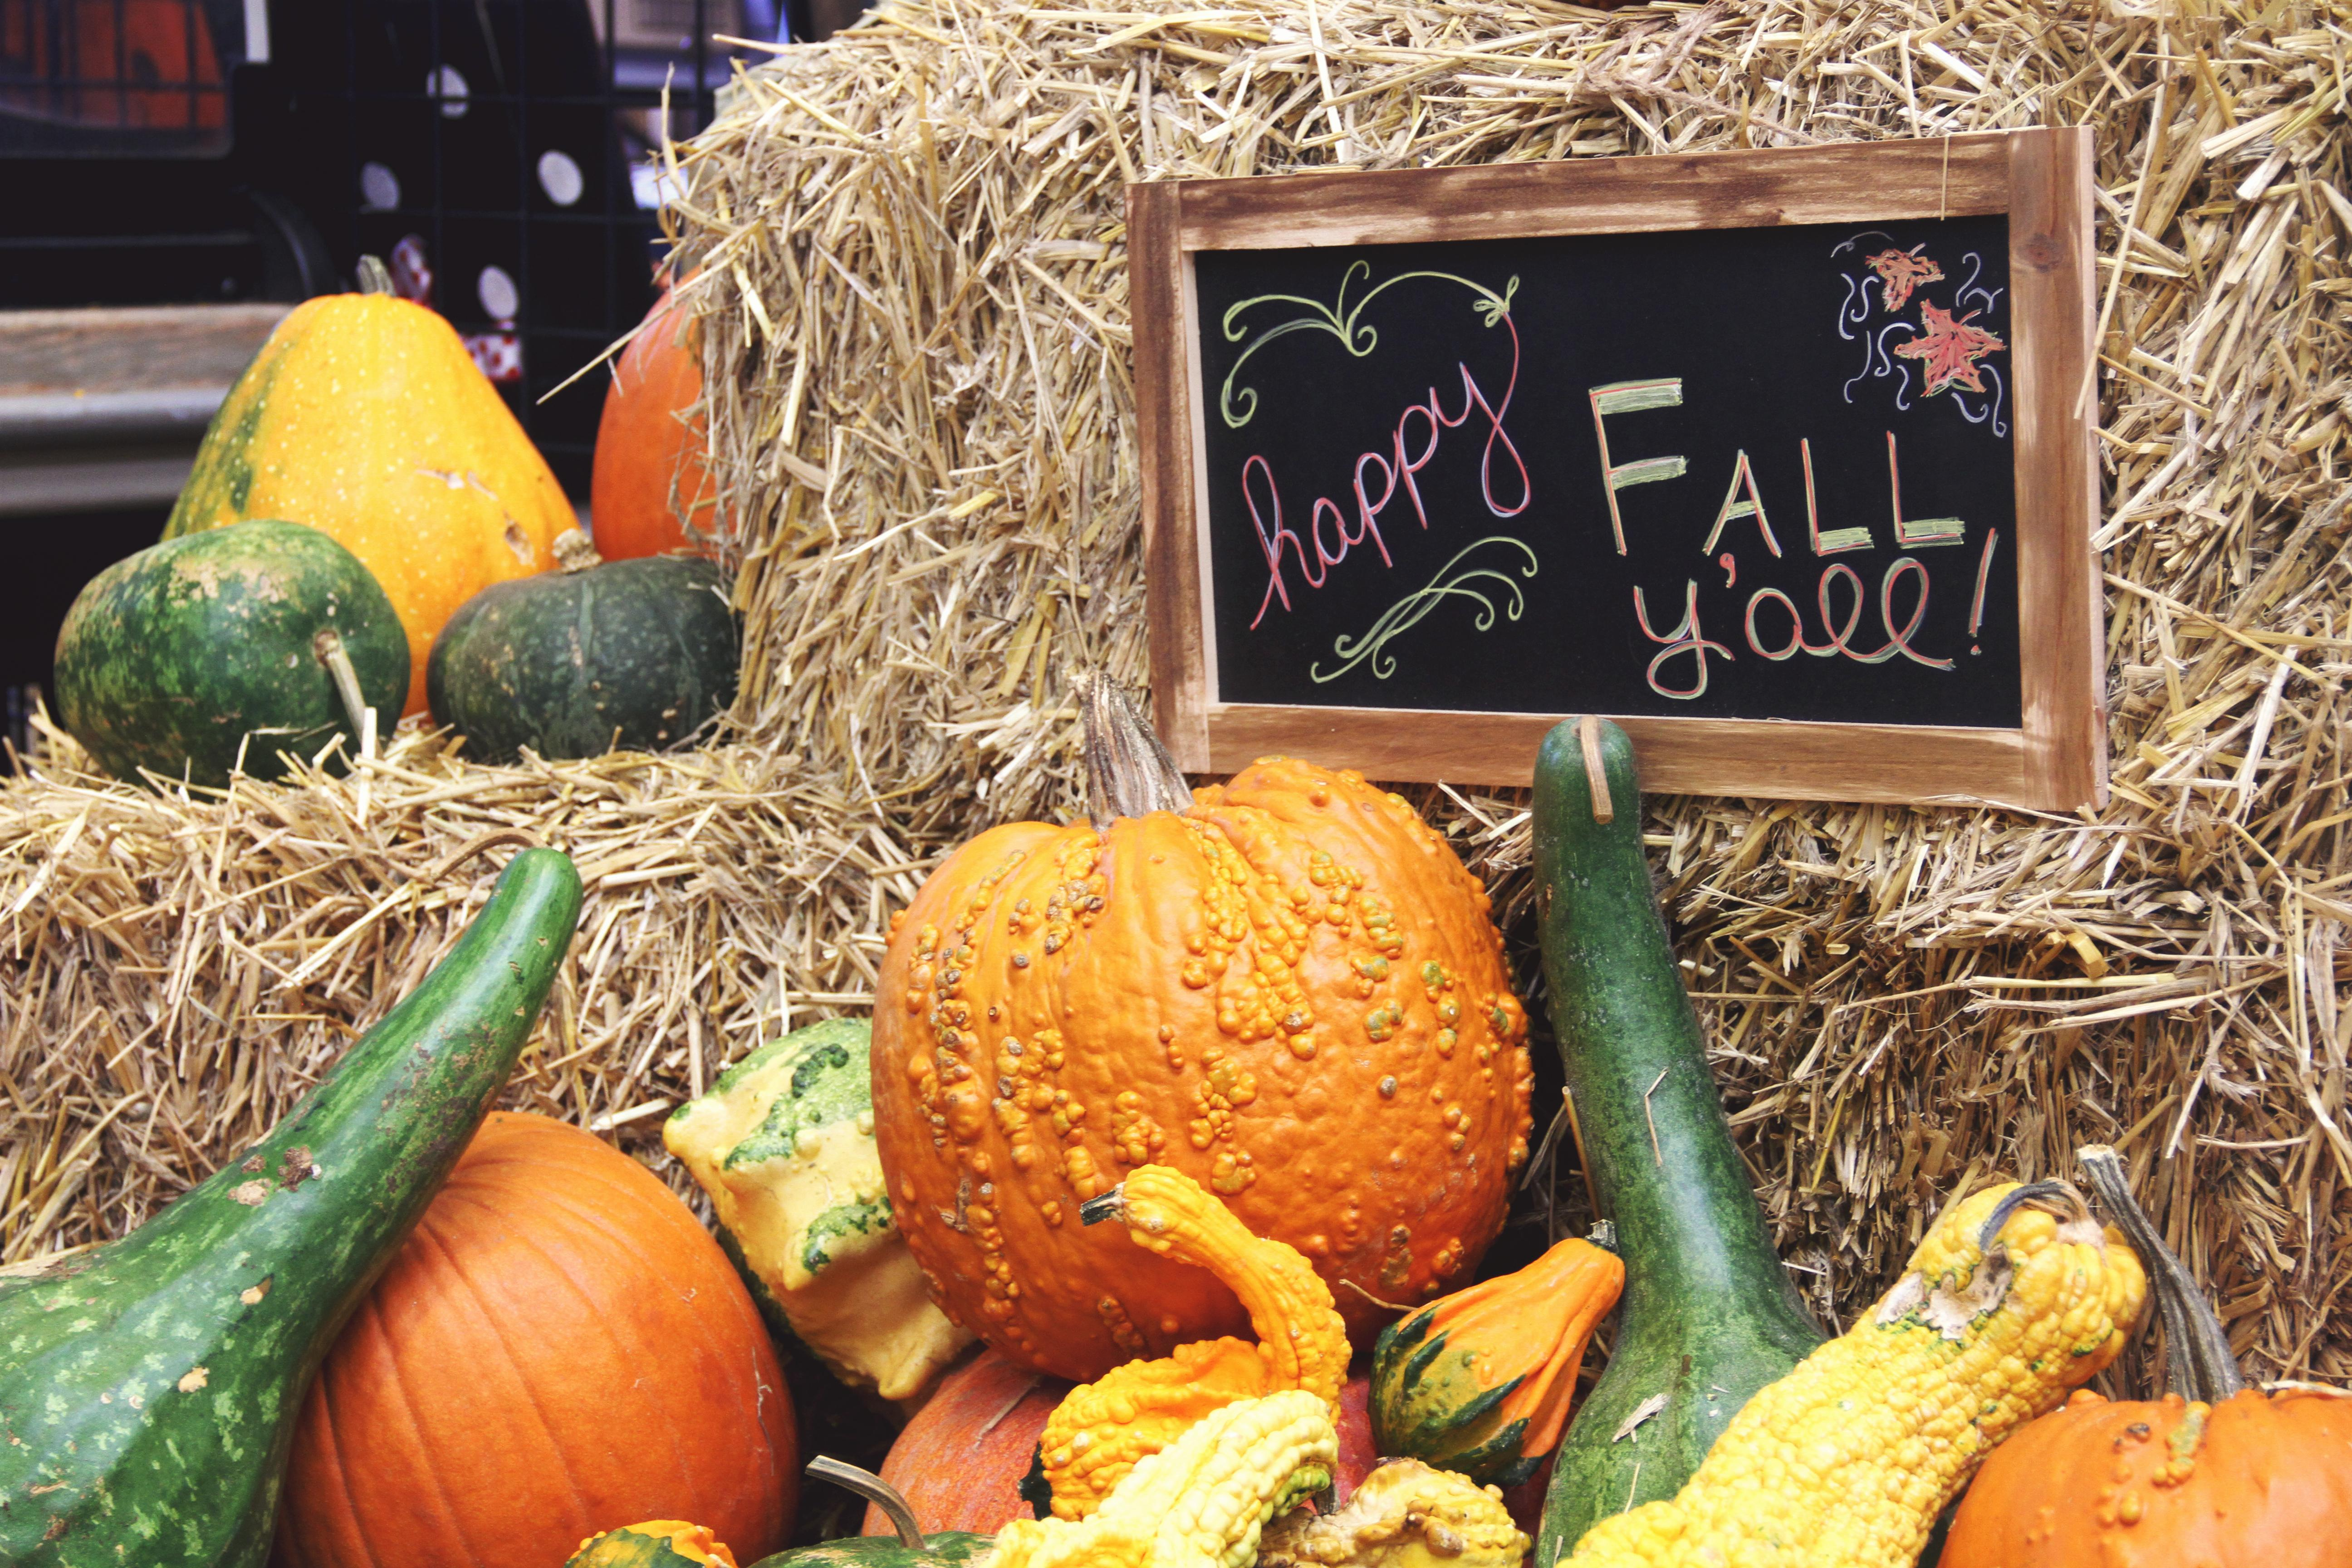 The WNC Farmers Market in October 2017. (Photo credit: WLOS Staff)